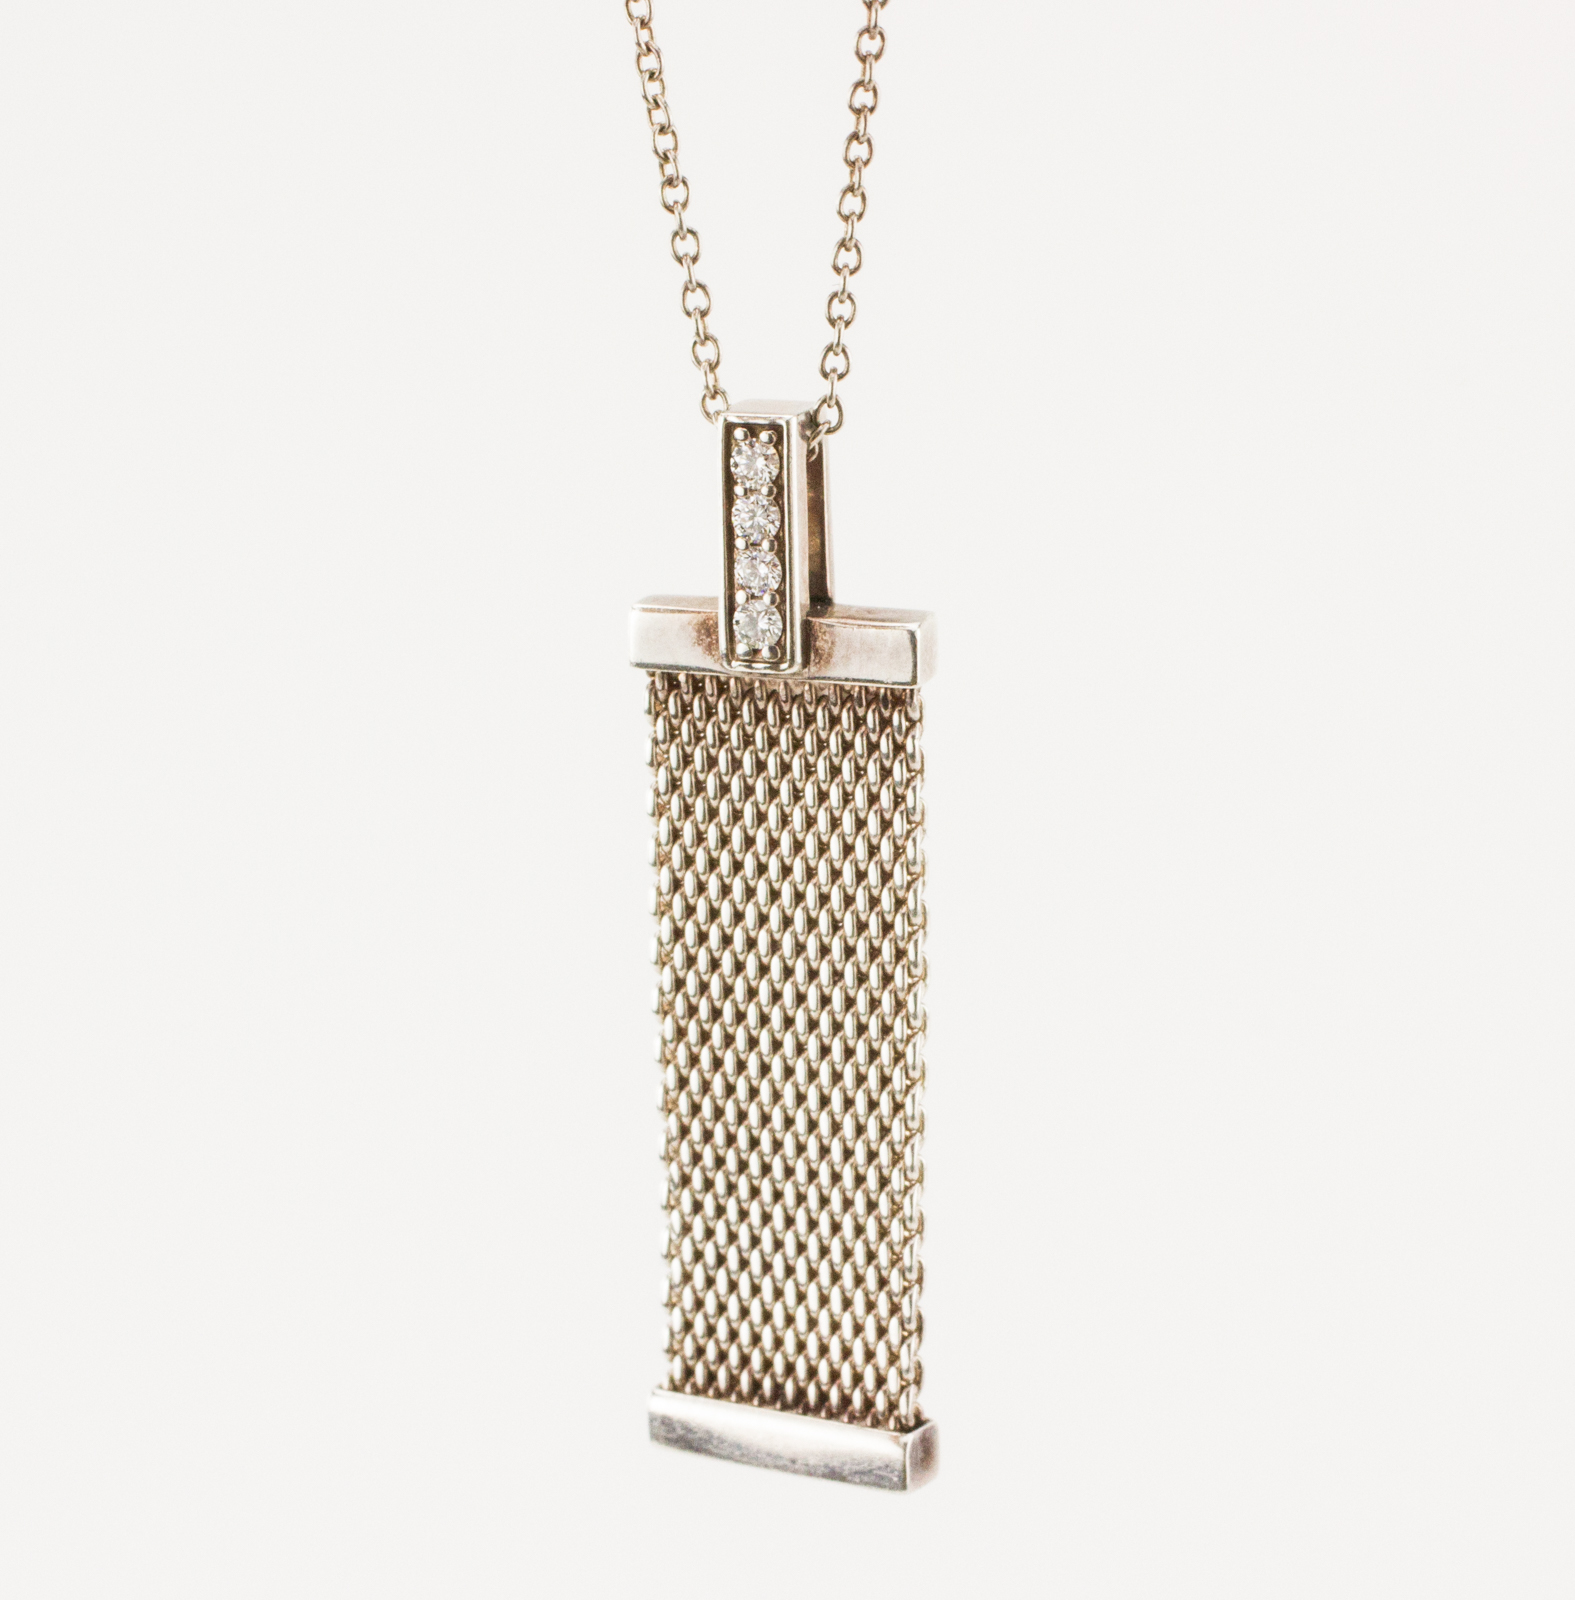 Tiffany co sterling silver mesh and diamond pendant necklace tiffany co sterling silver mesh and diamond pendant necklace aloadofball Images